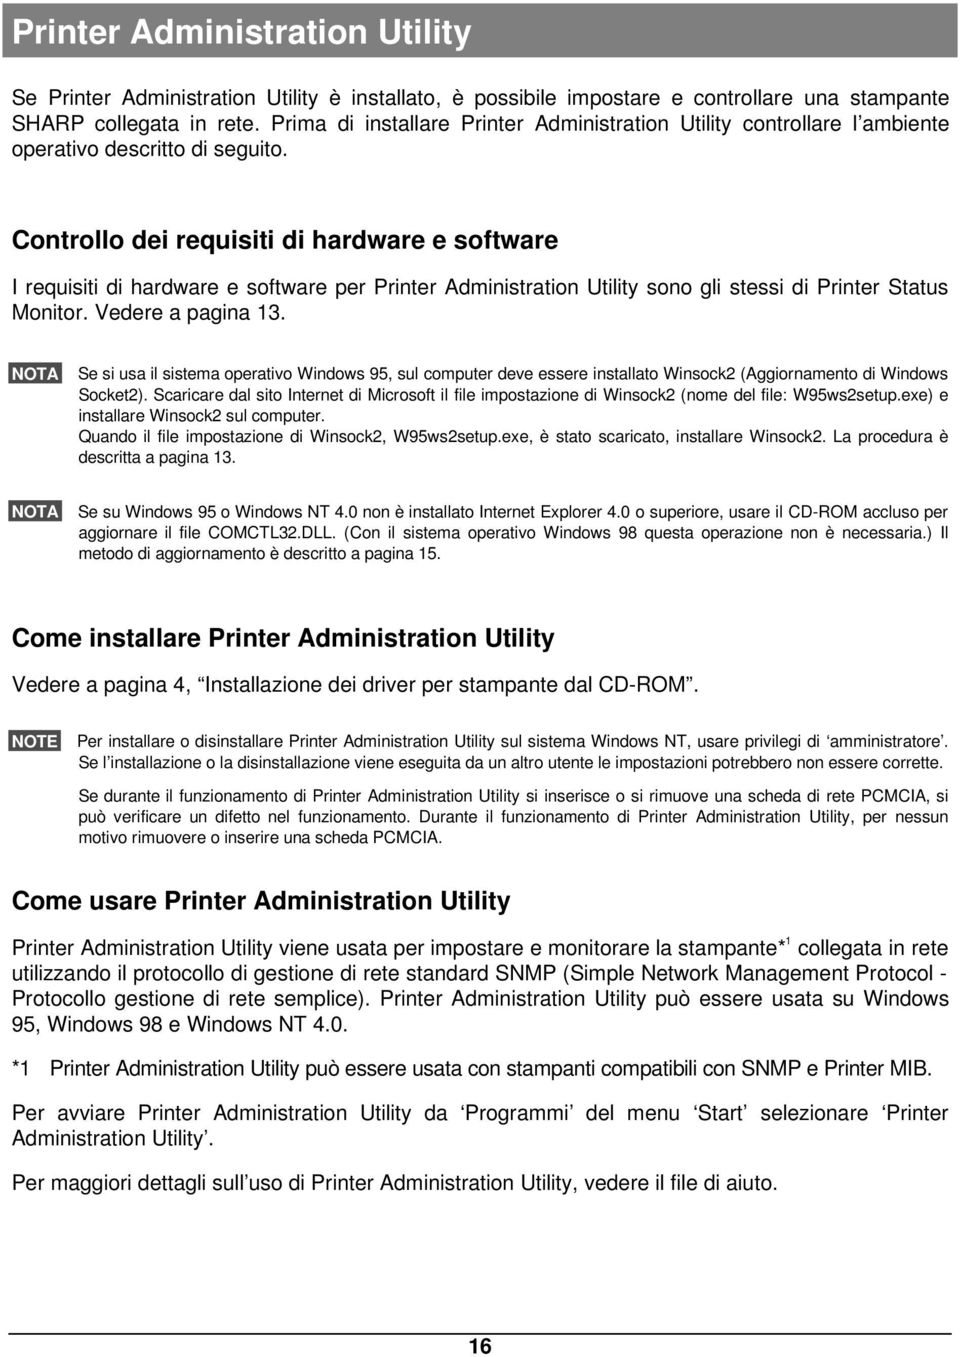 Controllo dei requisiti di hardware e software I requisiti di hardware e software per Printer Administration Utility sono gli stessi di Printer Status Monitor. Vedere a pagina 13.